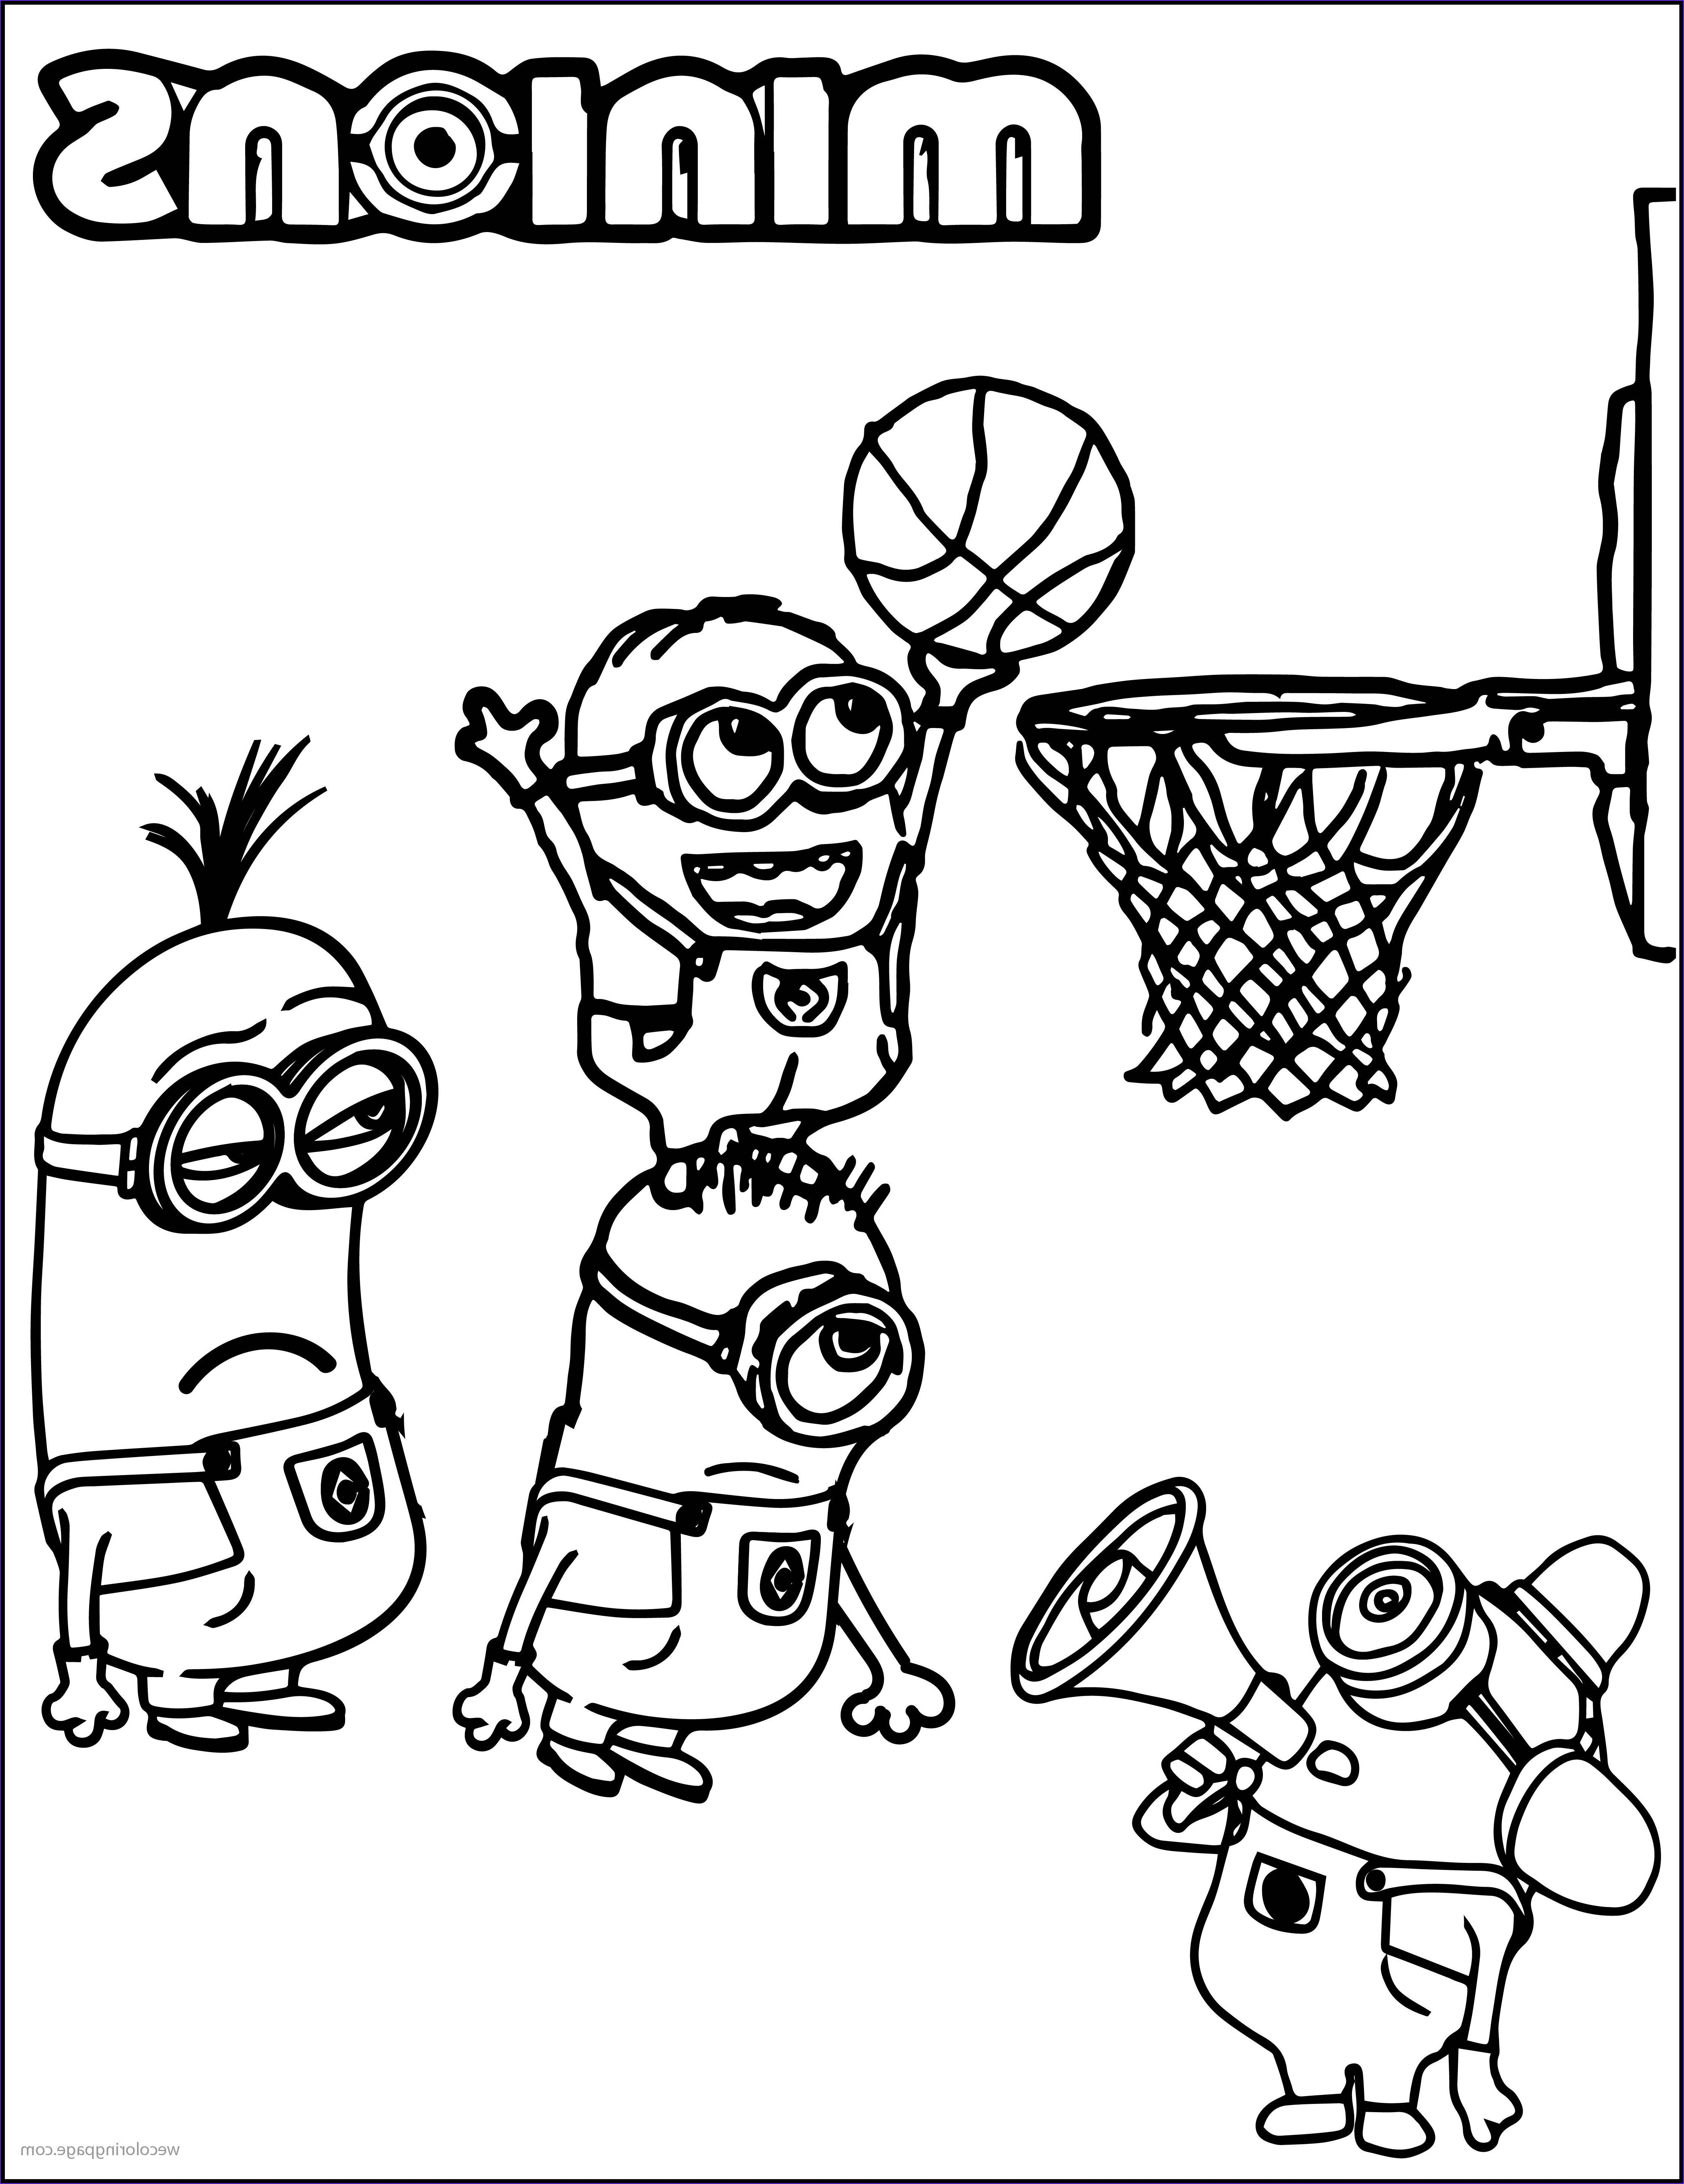 15 Beautiful Basketball Coloring Page Gallery Apen